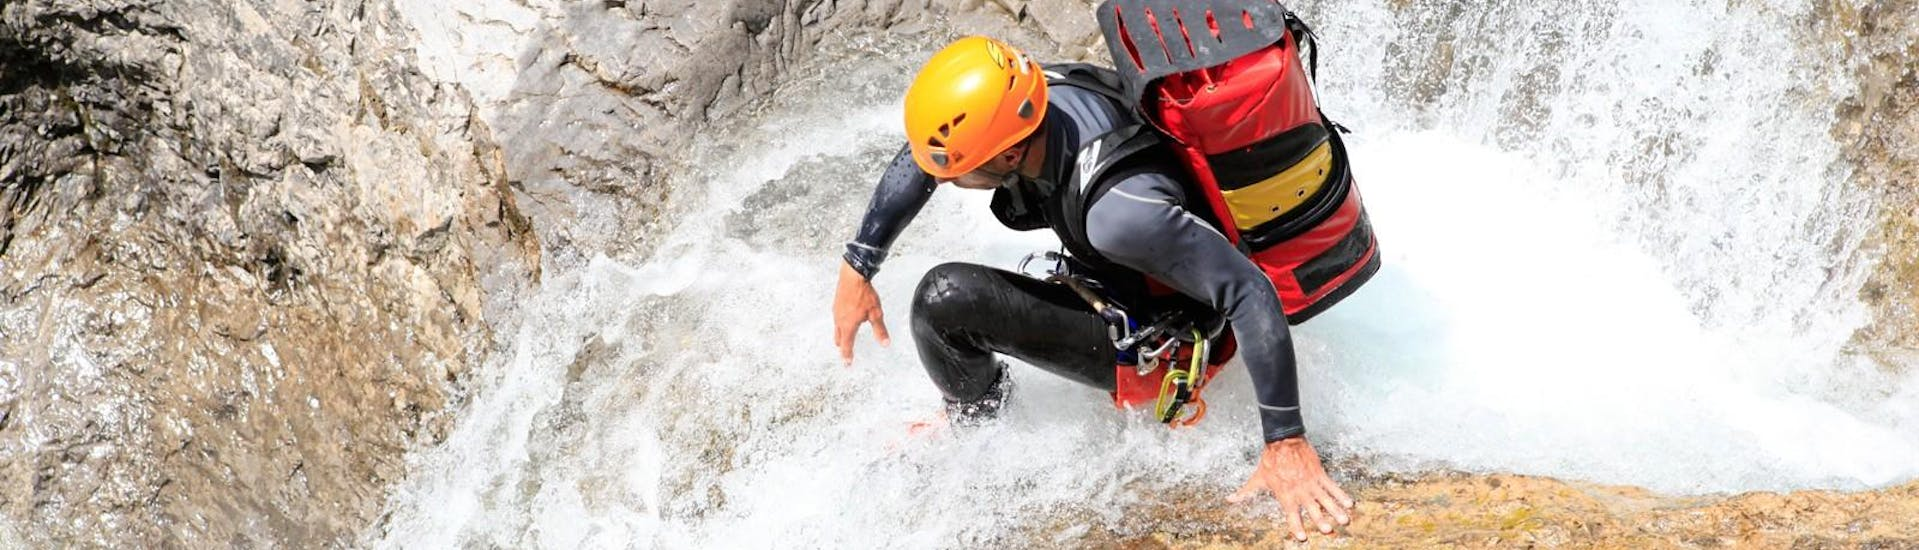 During the Canyoning in the Hochalpschlucht with Fun Rafting Lechtal, a guide is climbing through the water in the gorge.